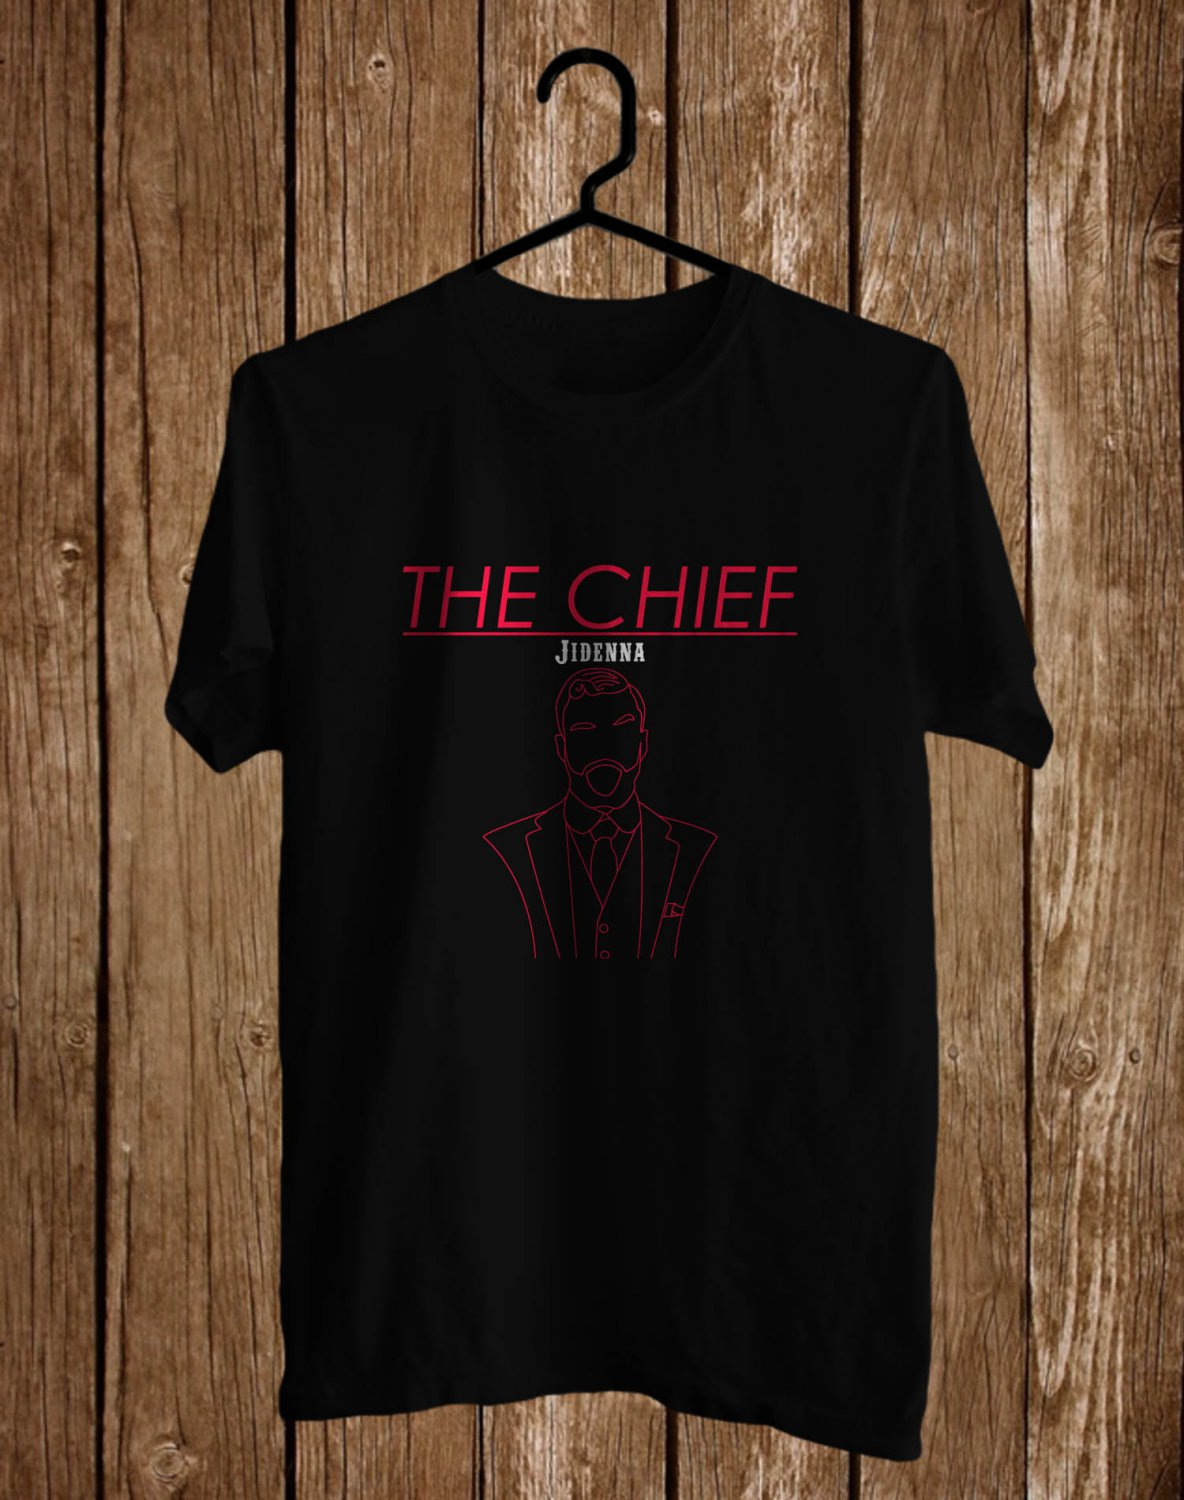 Jidenna The Chief logo Black Tee's Front Side by Complexart